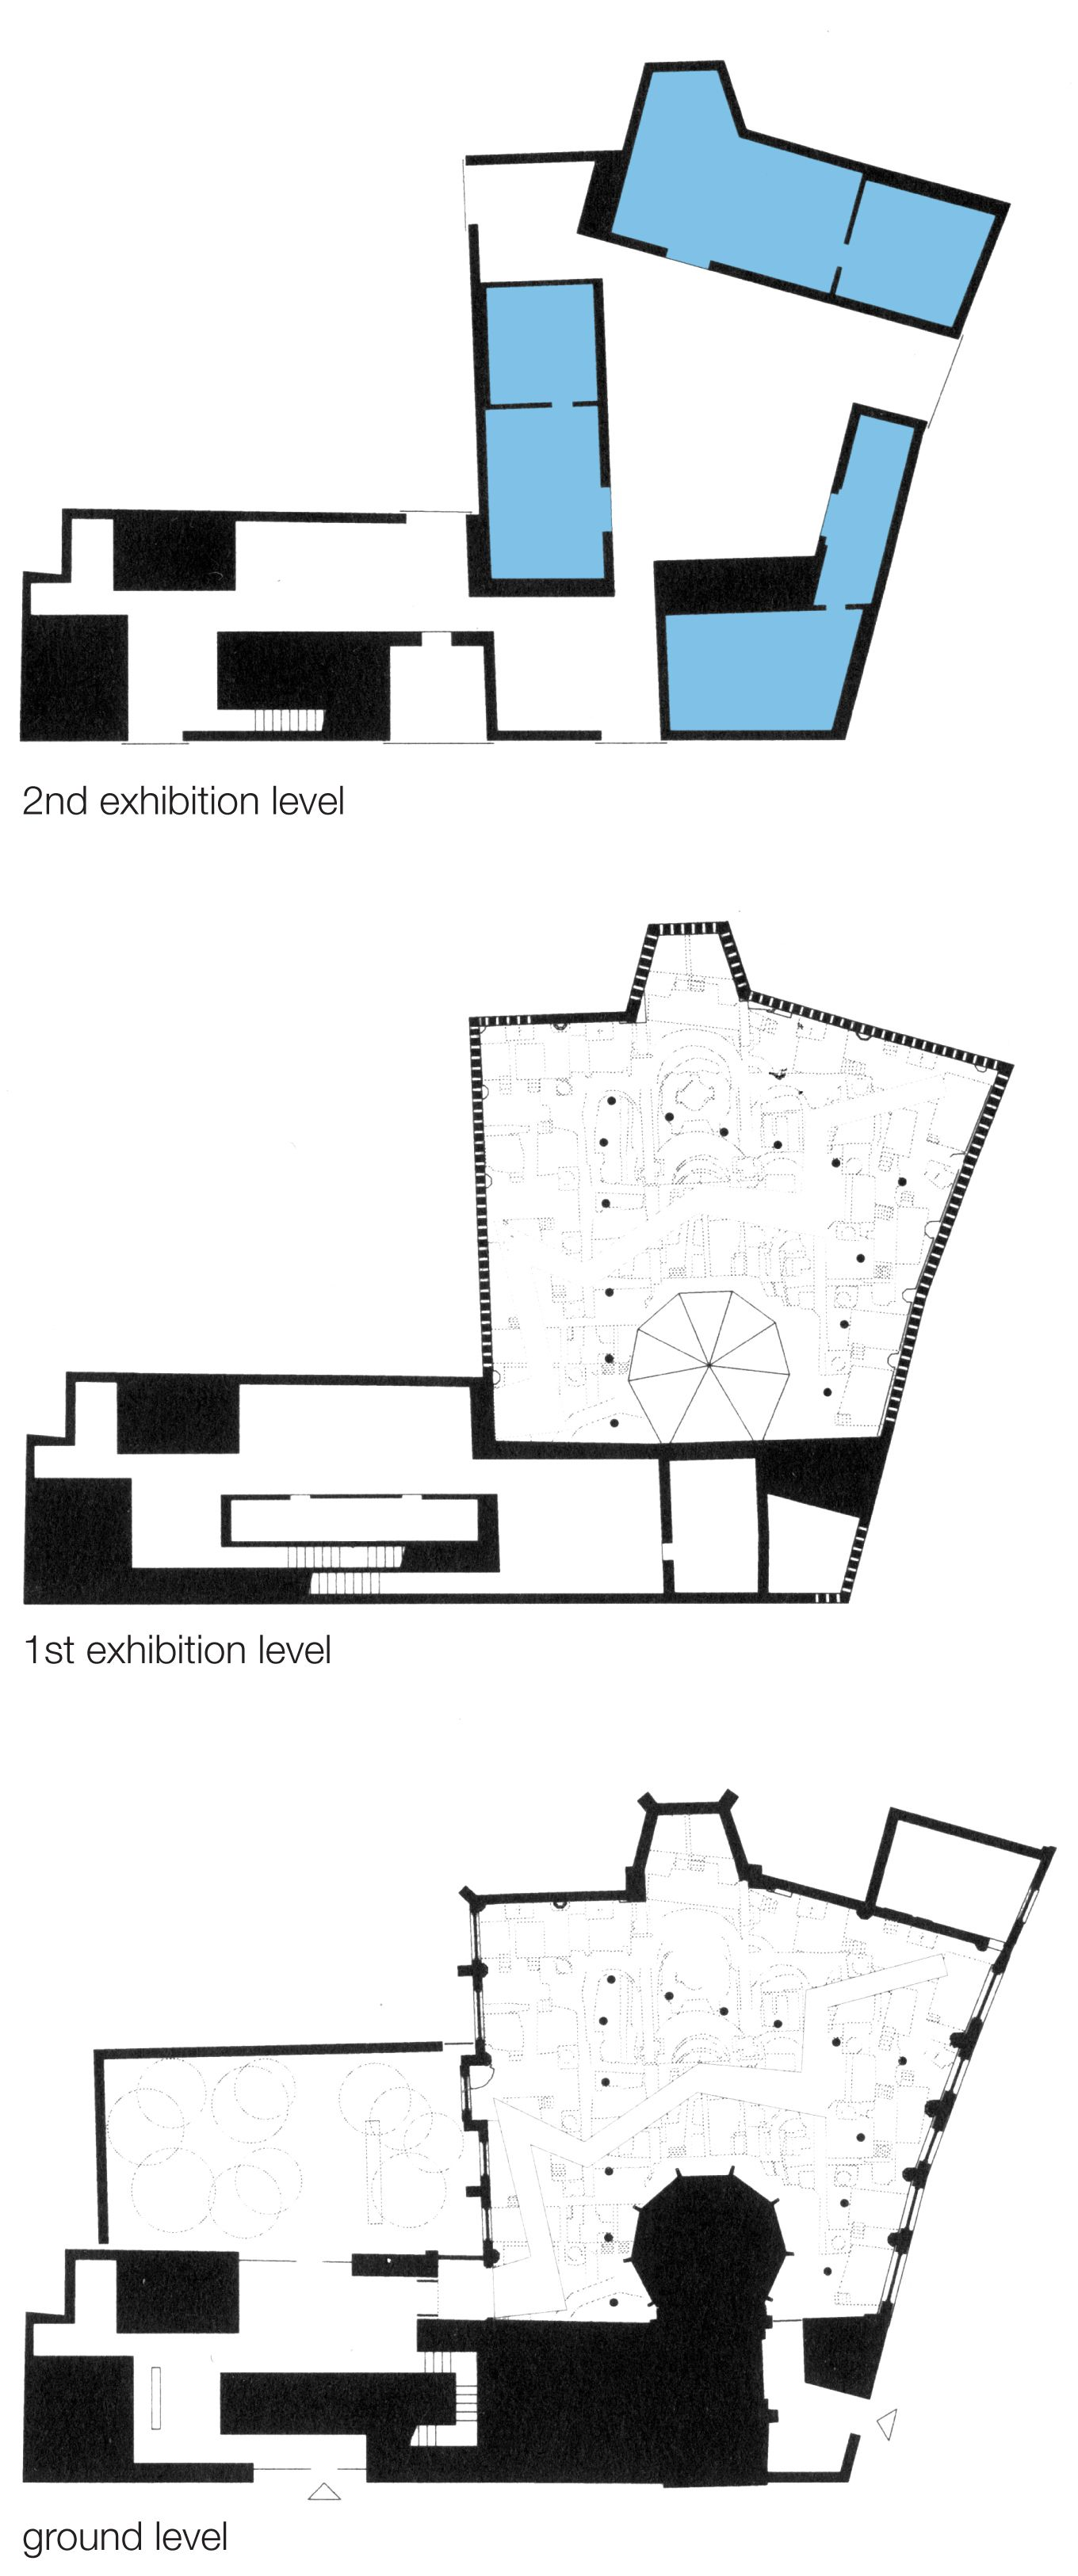 ZUMTHOR kolumba museum The space is in the plan Pinterest Art museum The ojays and Museums - Church Building Floor Plans